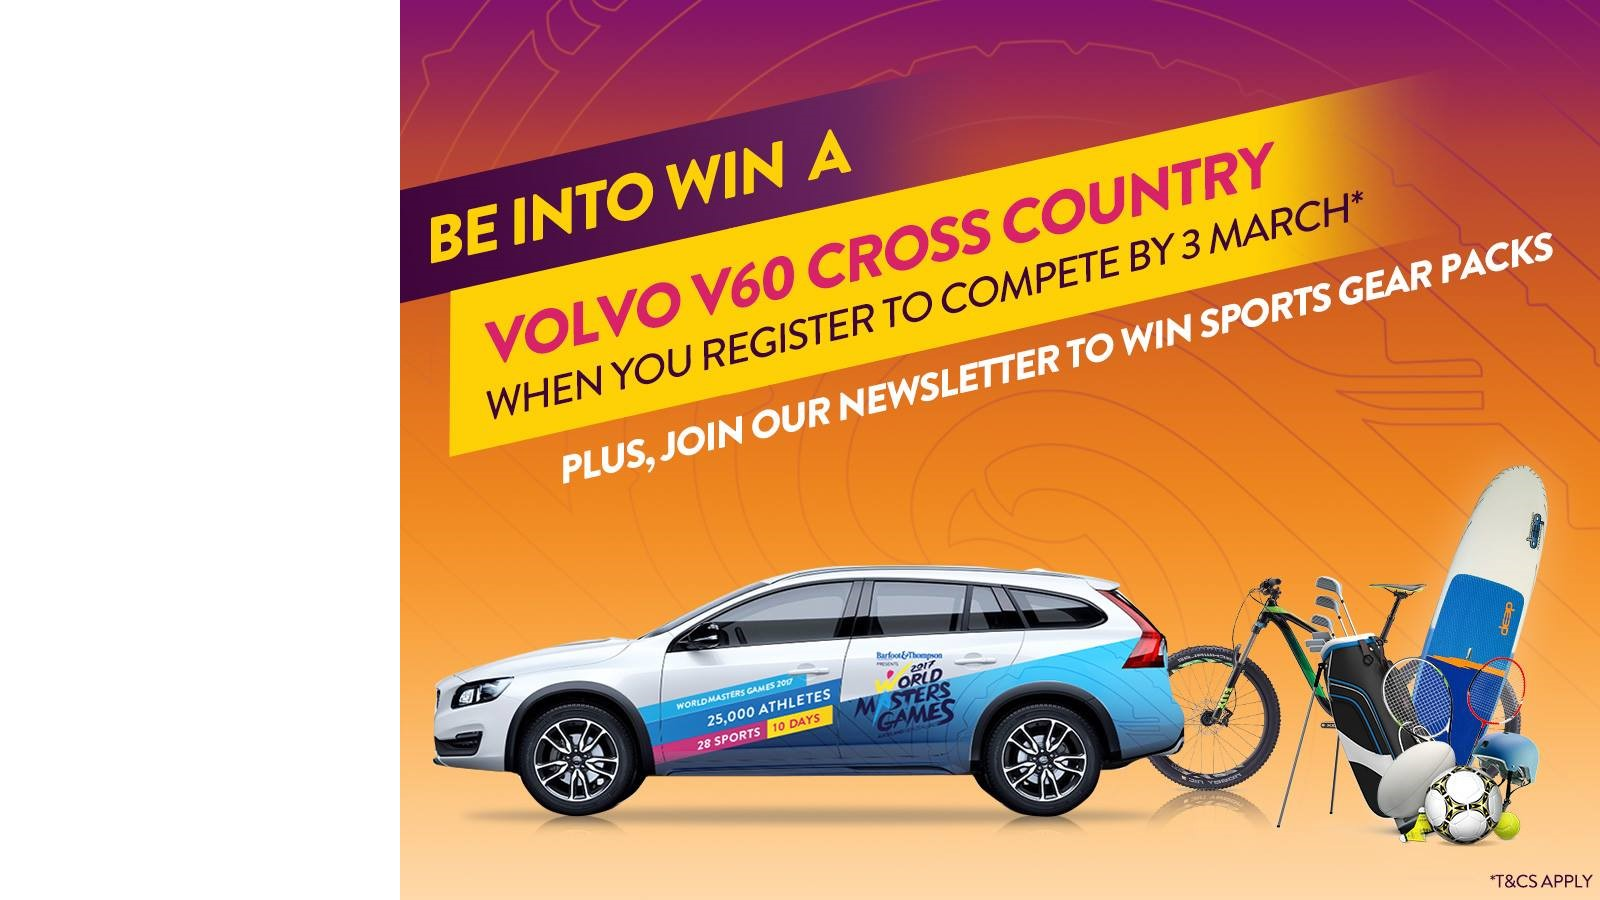 Be into Win a Volvo v60 Cross Country when you register to compete by 3 March 2017